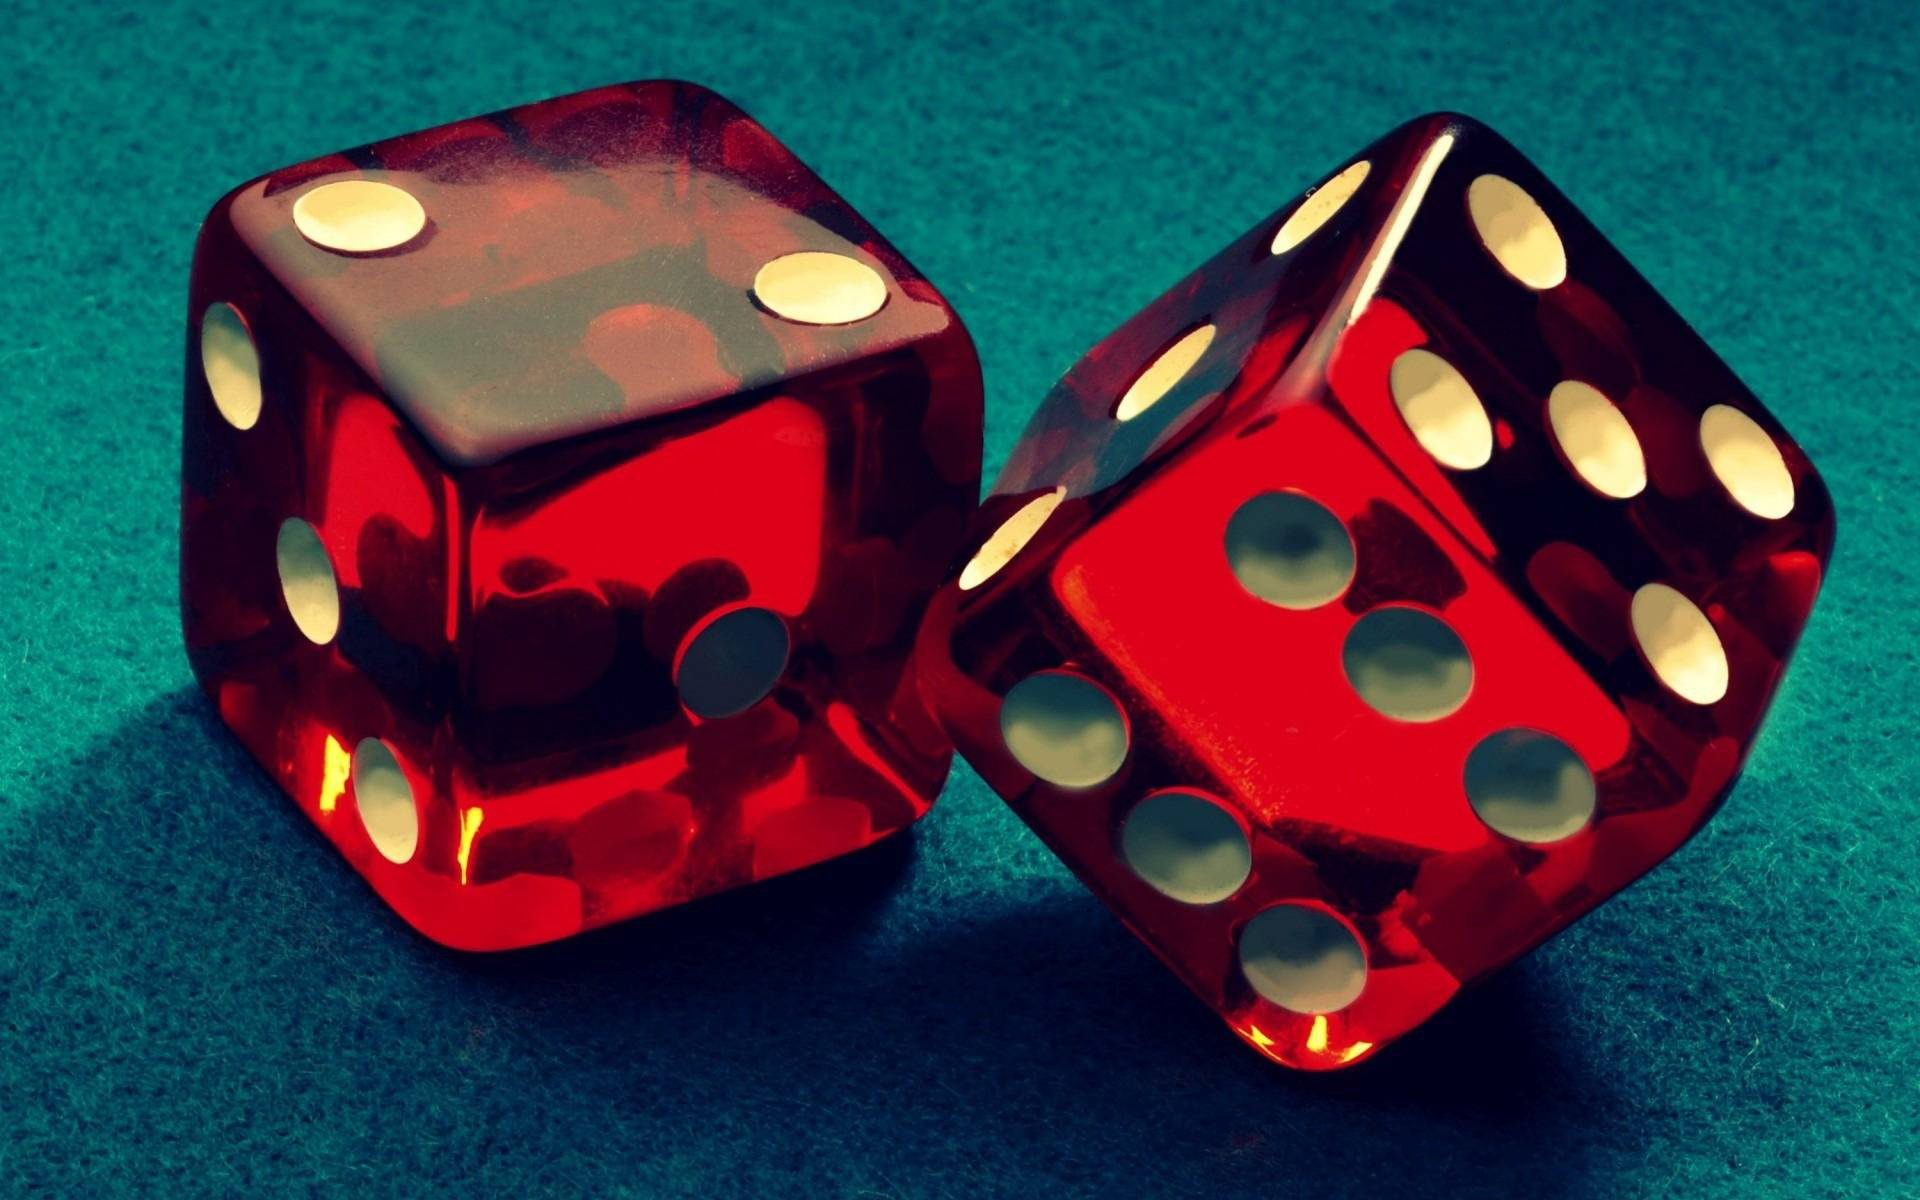 Dice Full Hd Wallpaper And Background 1920x1200 Id 514365 HD Wallpapers Download Free Images Wallpaper [1000image.com]